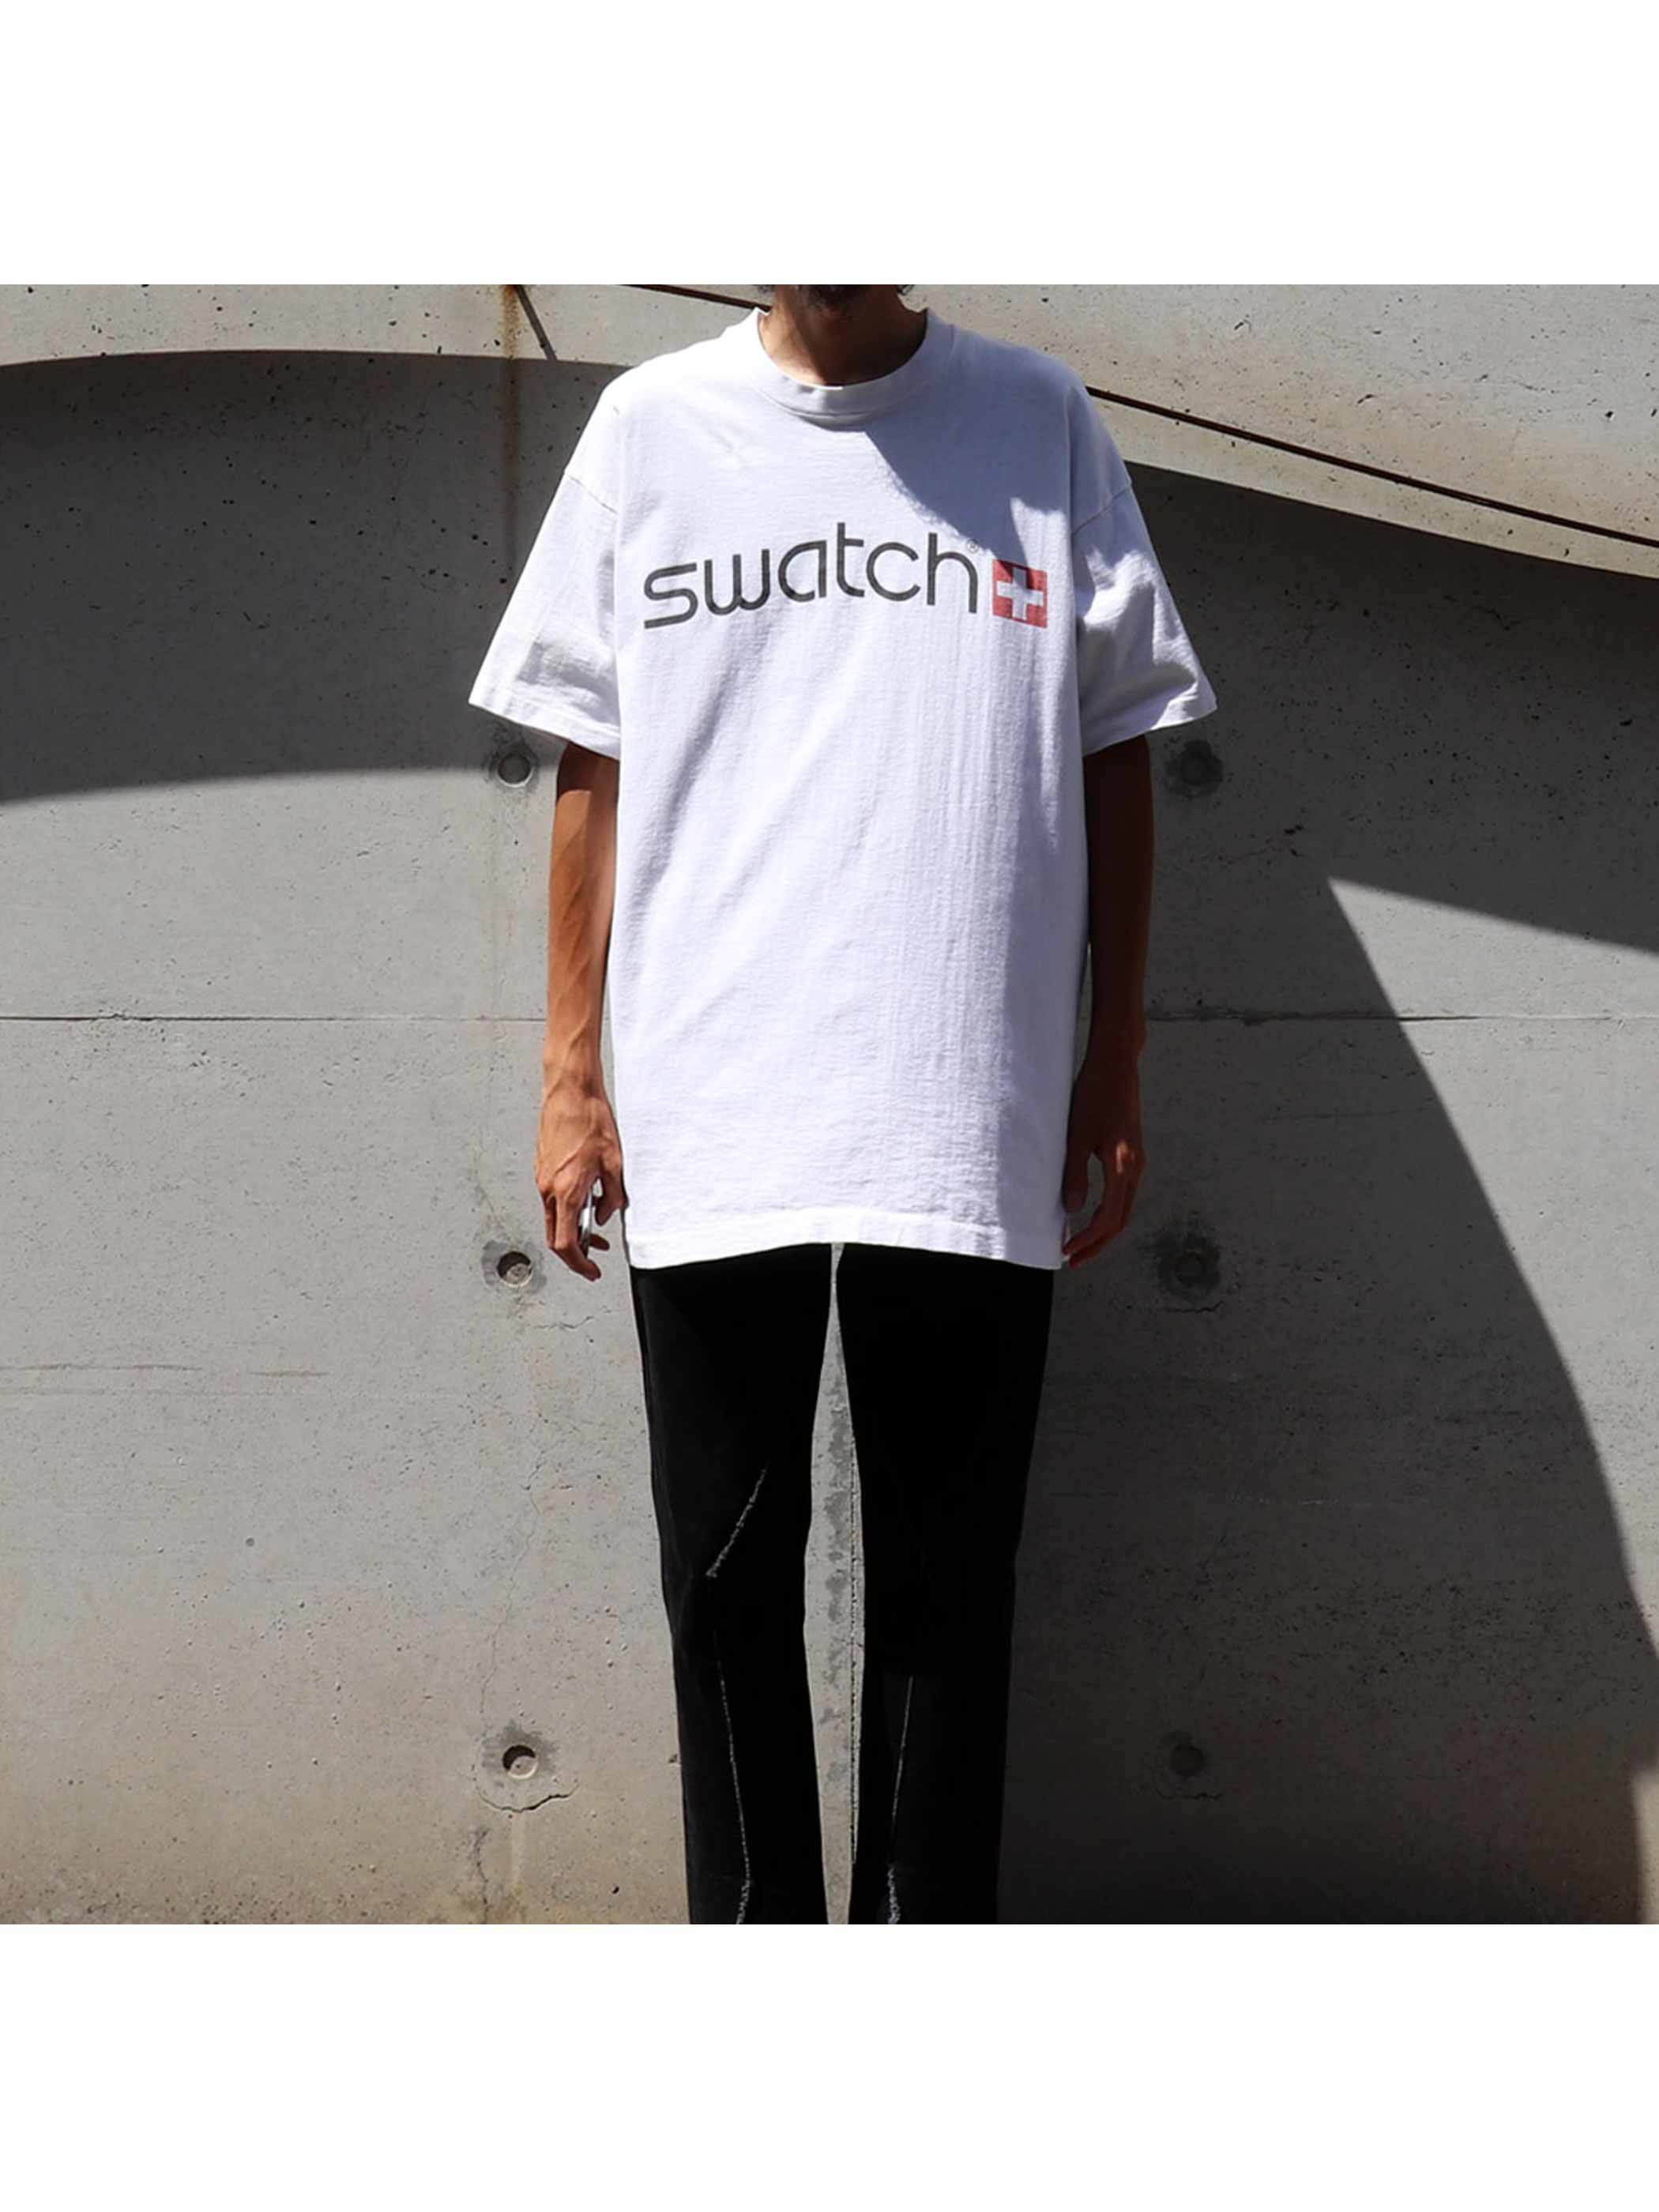 90's SWATCH USA製 Tシャツ [XL]